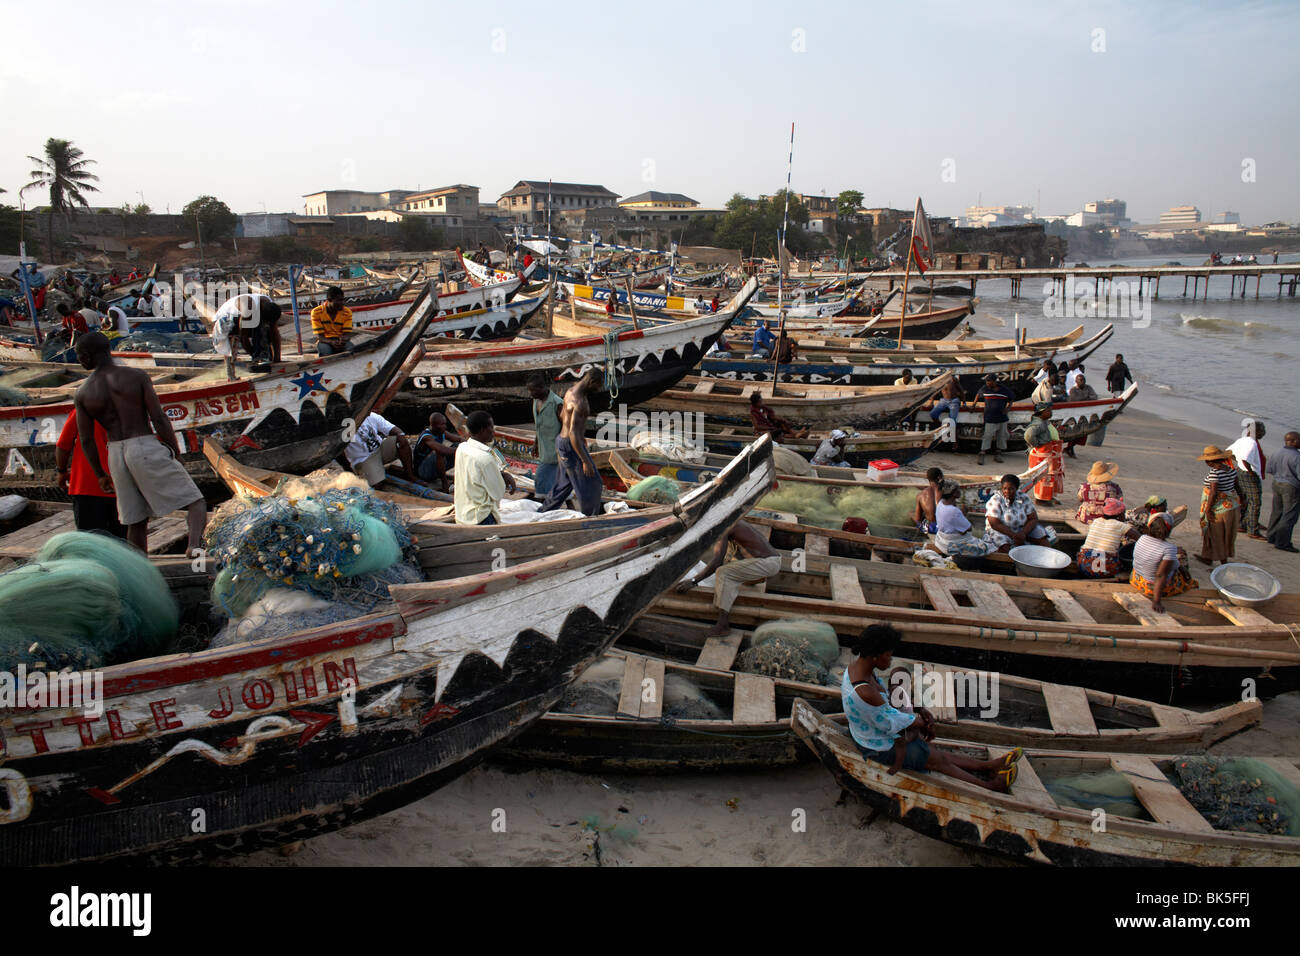 Fishing boats on the beach in Accra, Ghana, West Africa, Africa - Stock Image